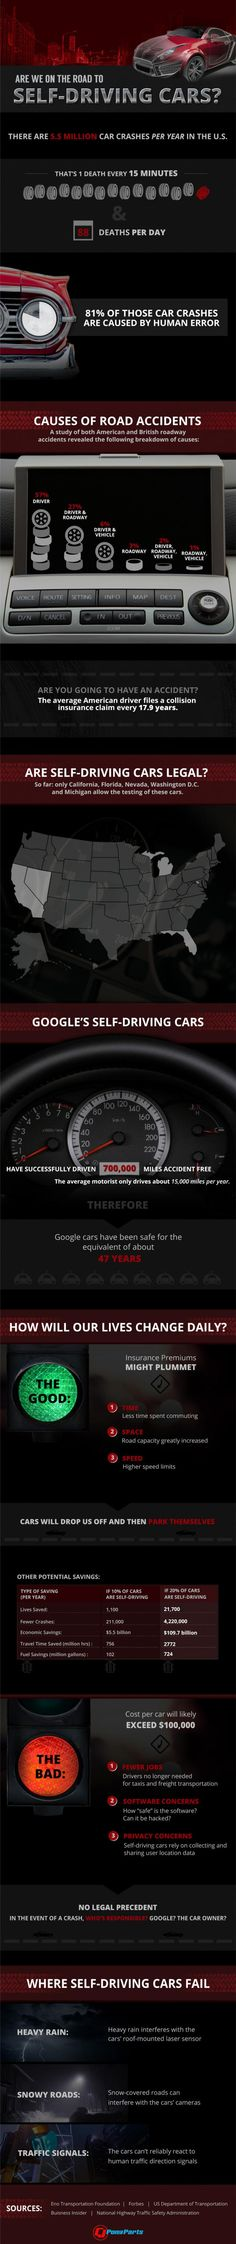 5. 88 deaths happen daily just in the USA involving cars 81% of then are caused by human error. The self driving car will eliminate the deaths #thisisthefuture